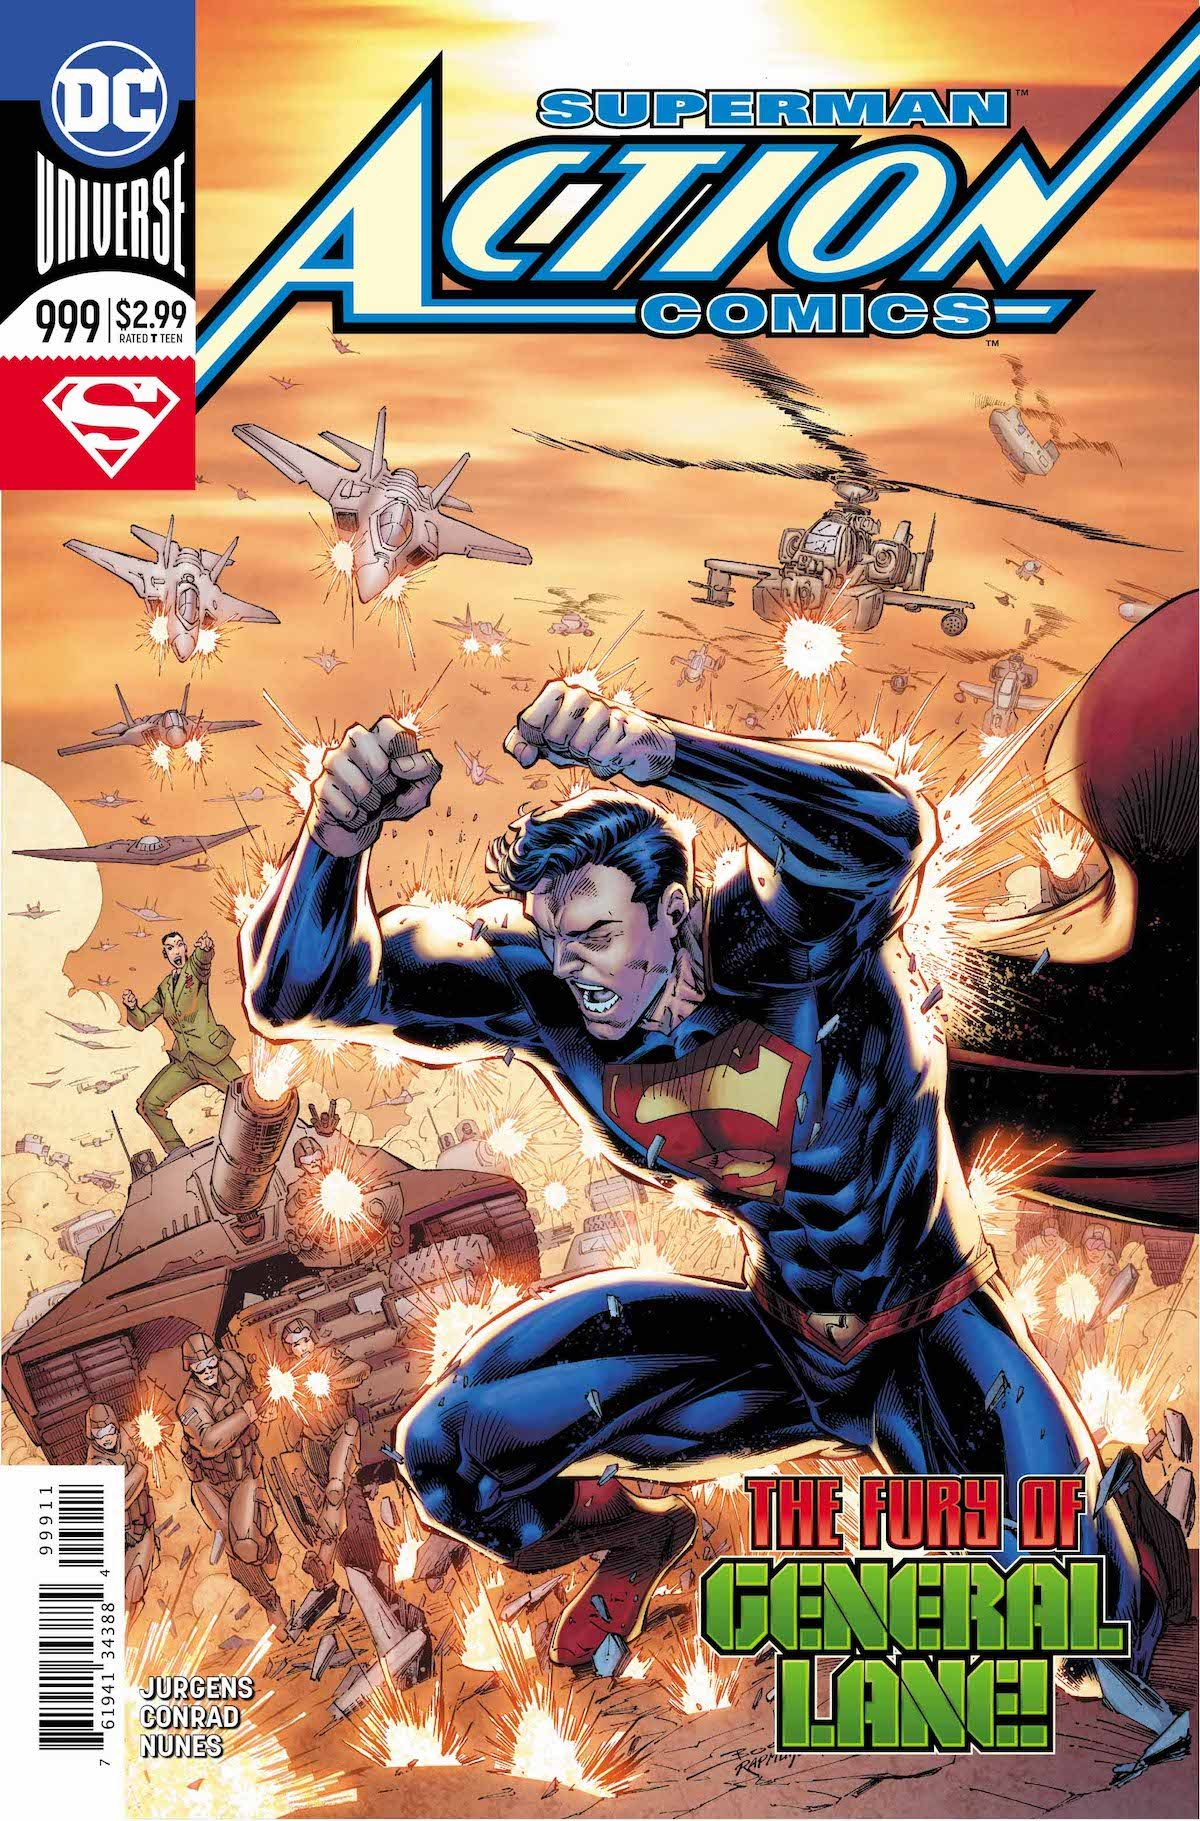 Action Comics #999 cover